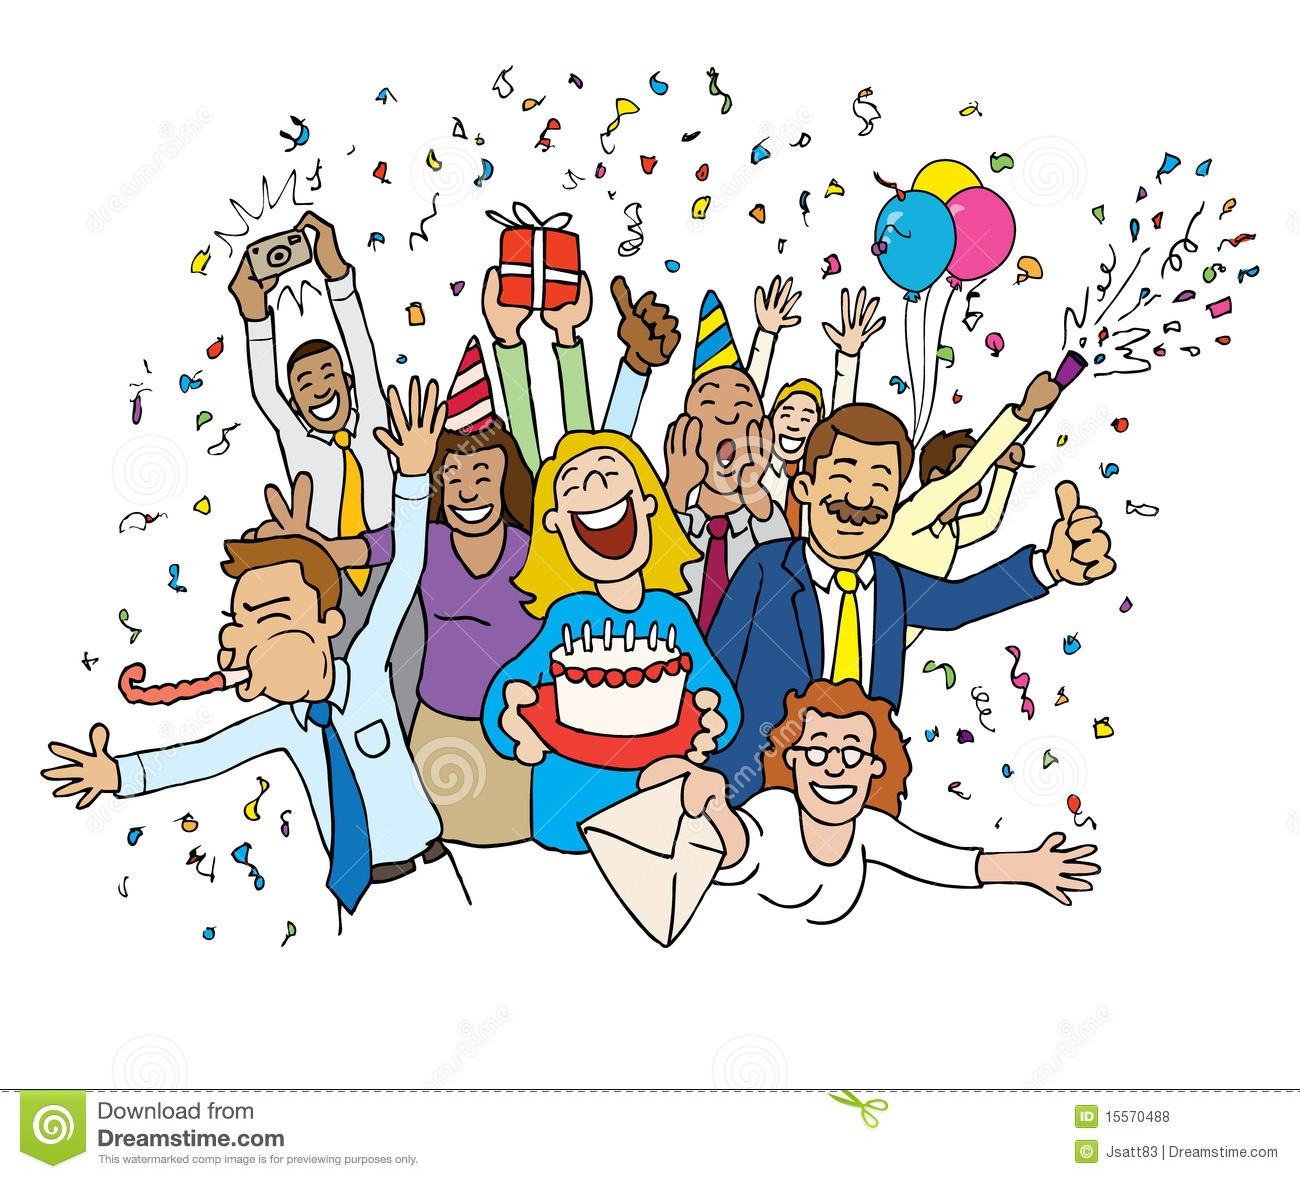 Celebrate clipart.  clipartlook